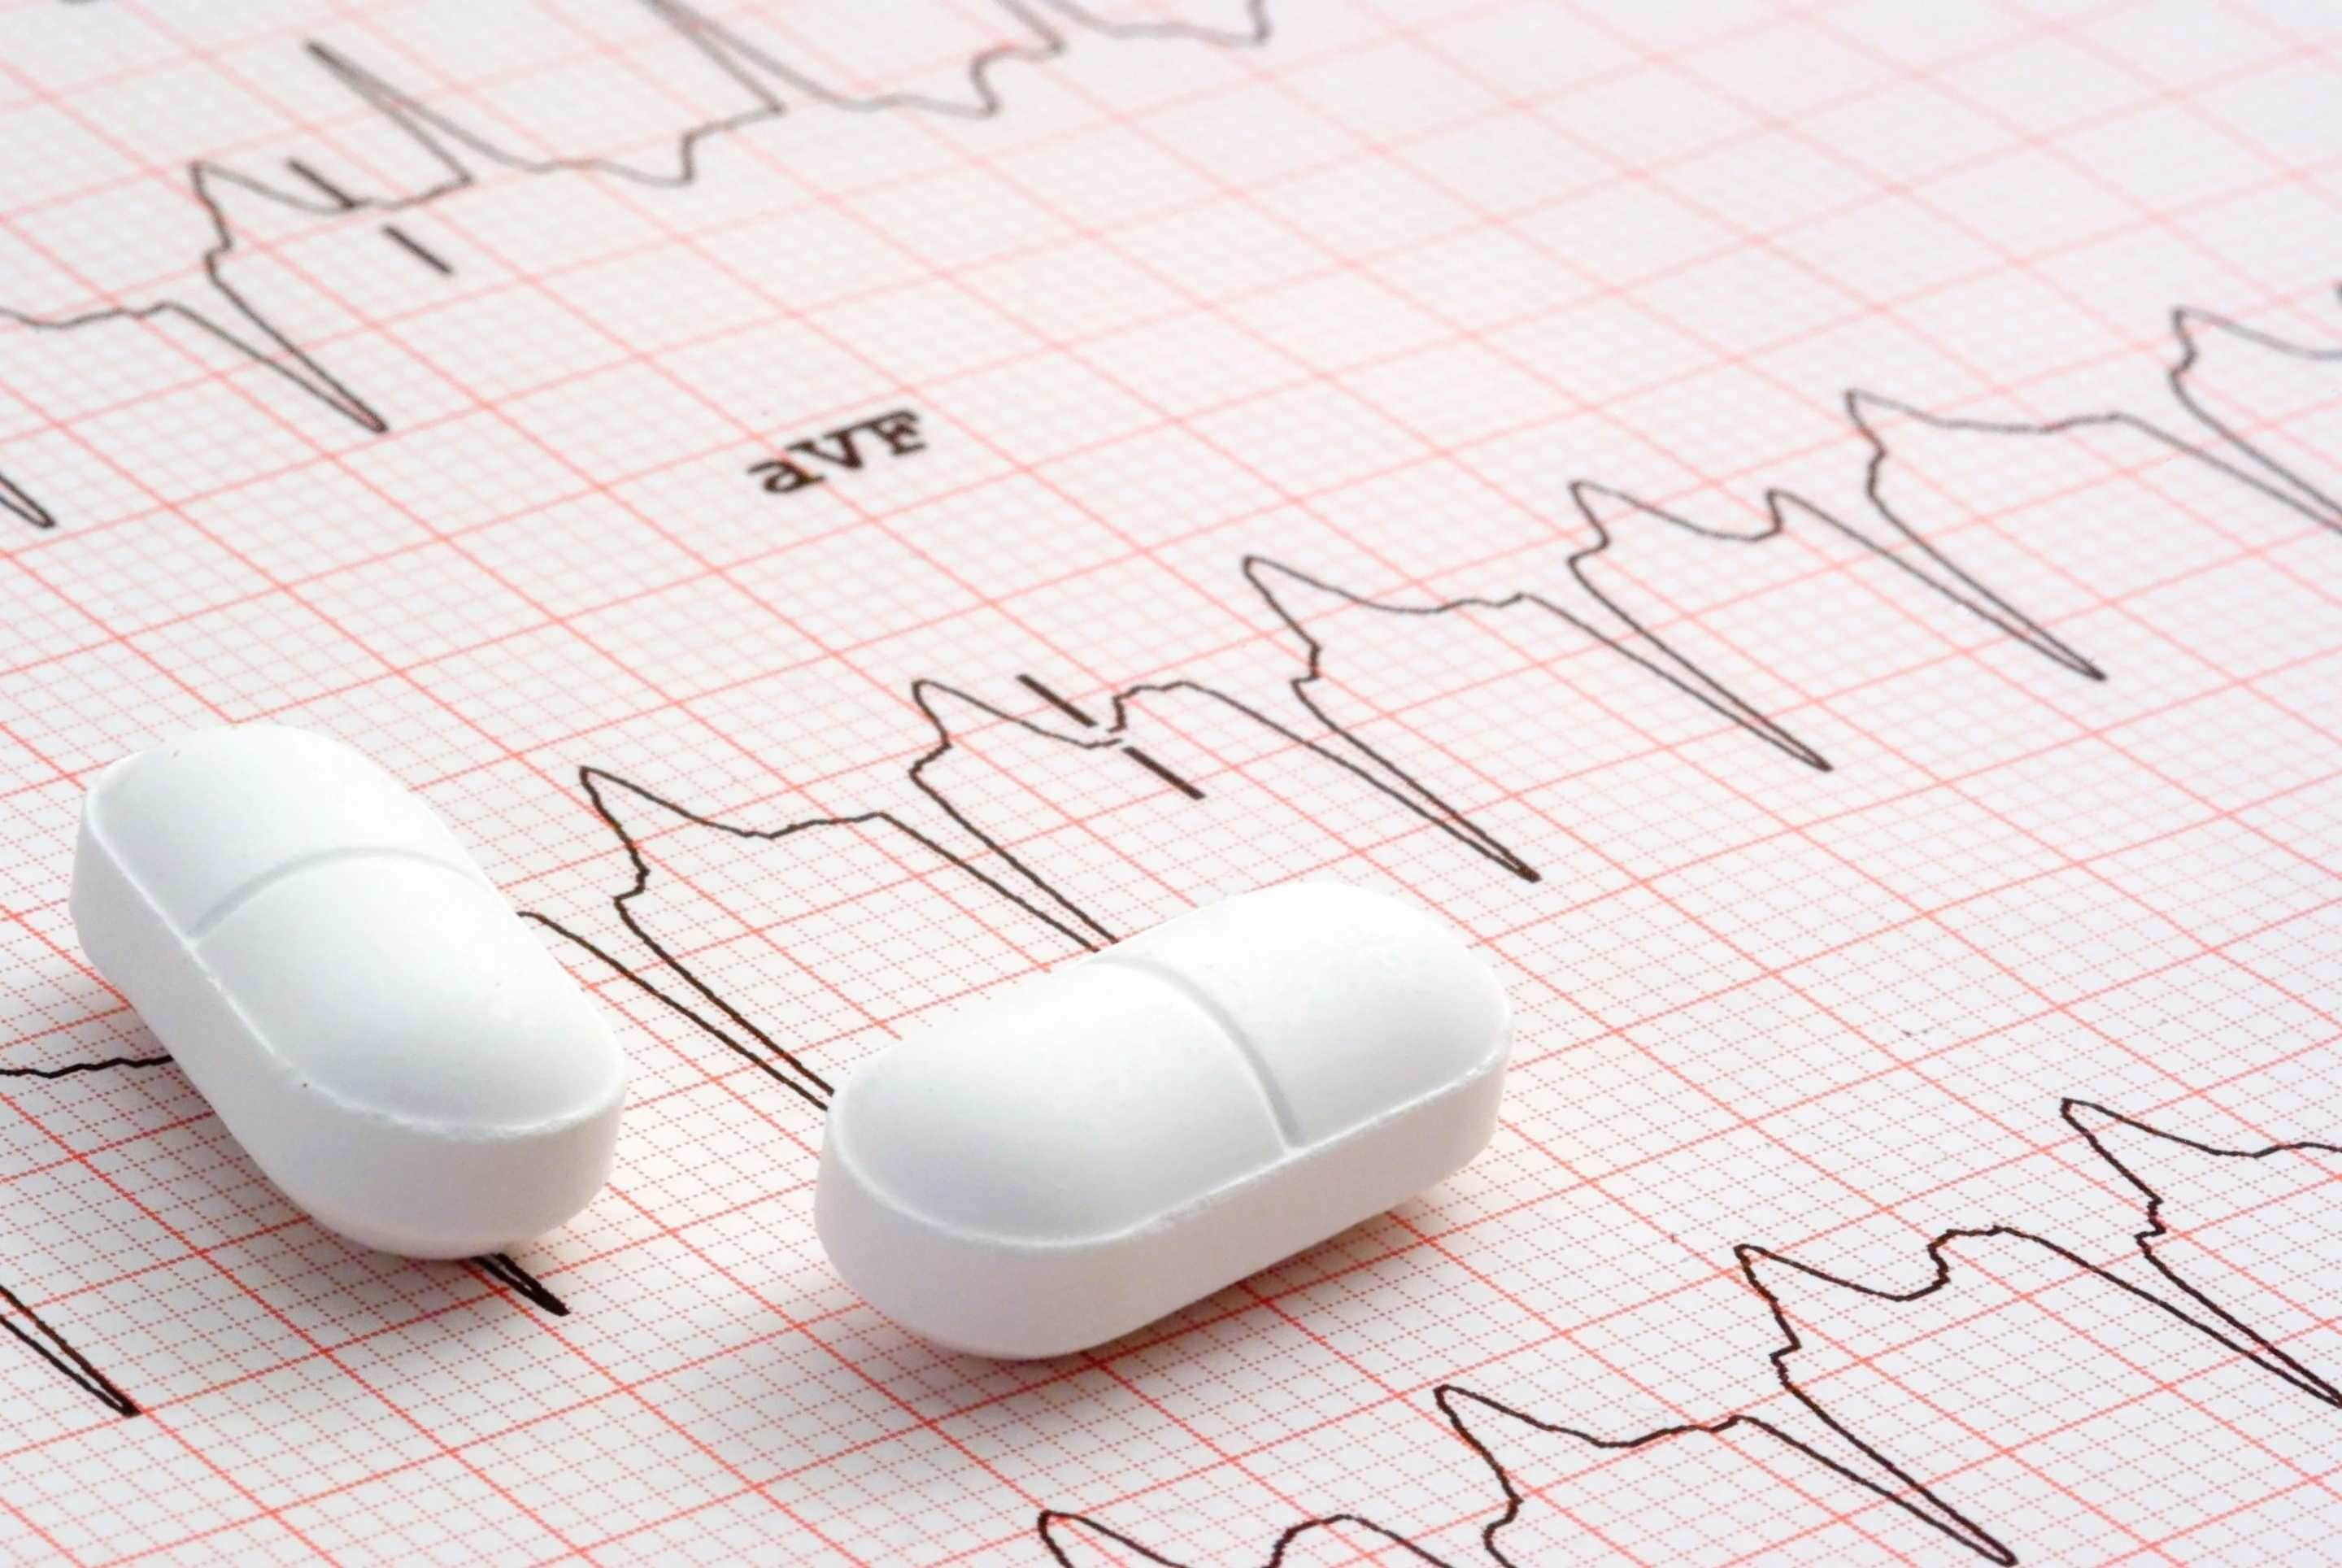 Image of cardiology graph and pharmaceutical pills